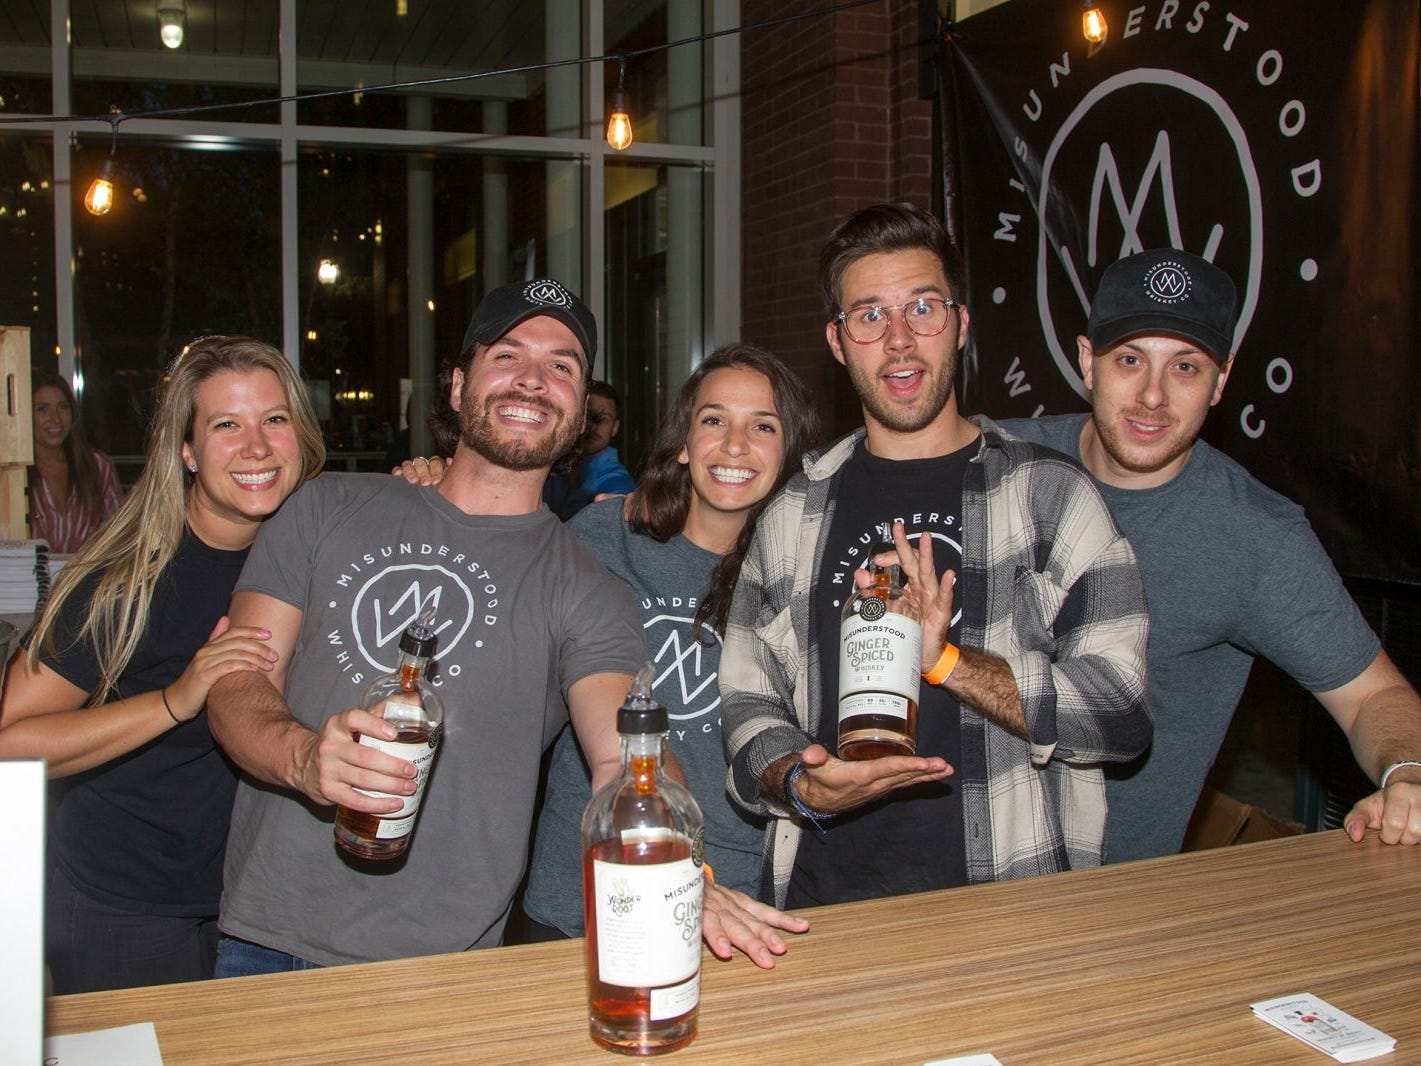 Misunderstood Whiskey. Jersey City Craft Distillery Fest at the Harborside Atrium featured more than 100 styles of spirits. Guests had the chance to taste craft-distilled spirits from moonshine, rum, cognac, whiskey, vodka, gin, tequila and more. 09/08/2018